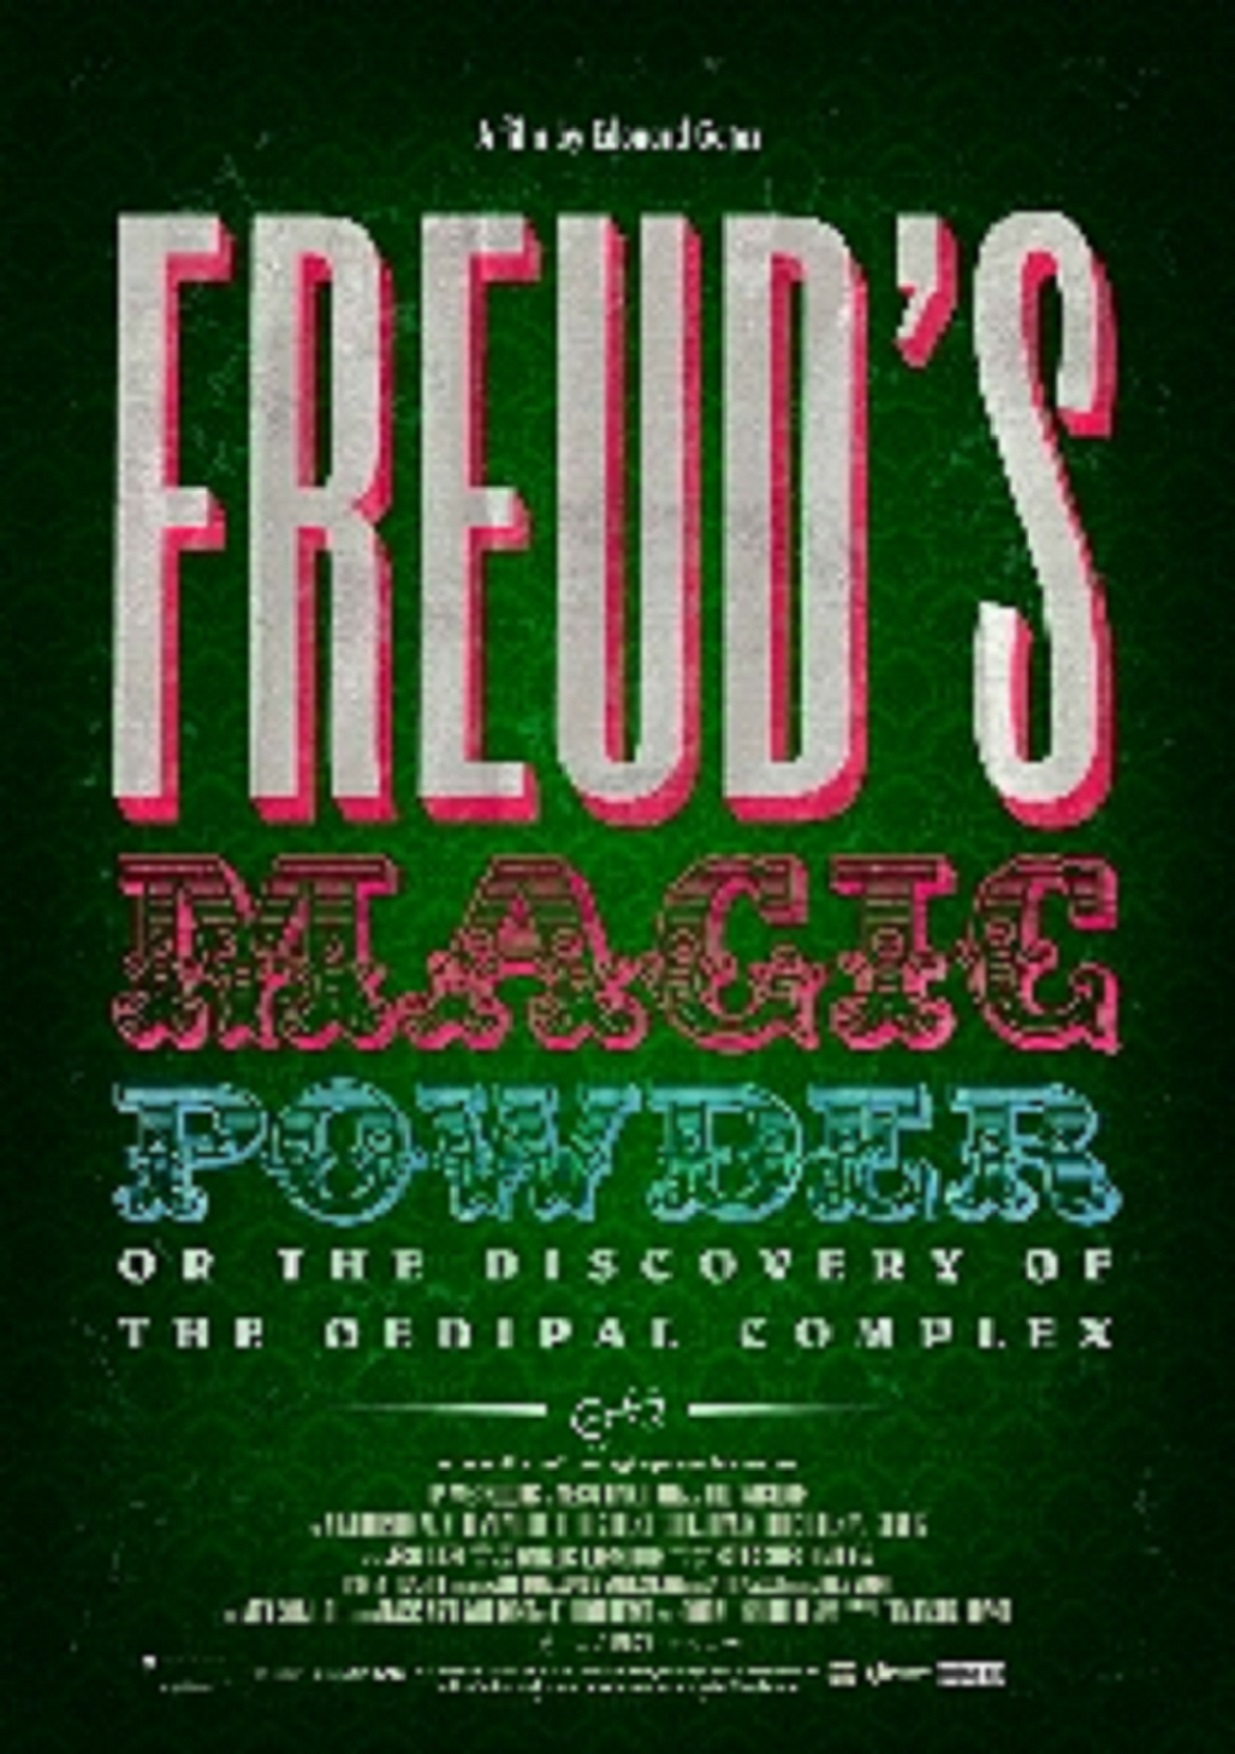 Freud's Magic Powder